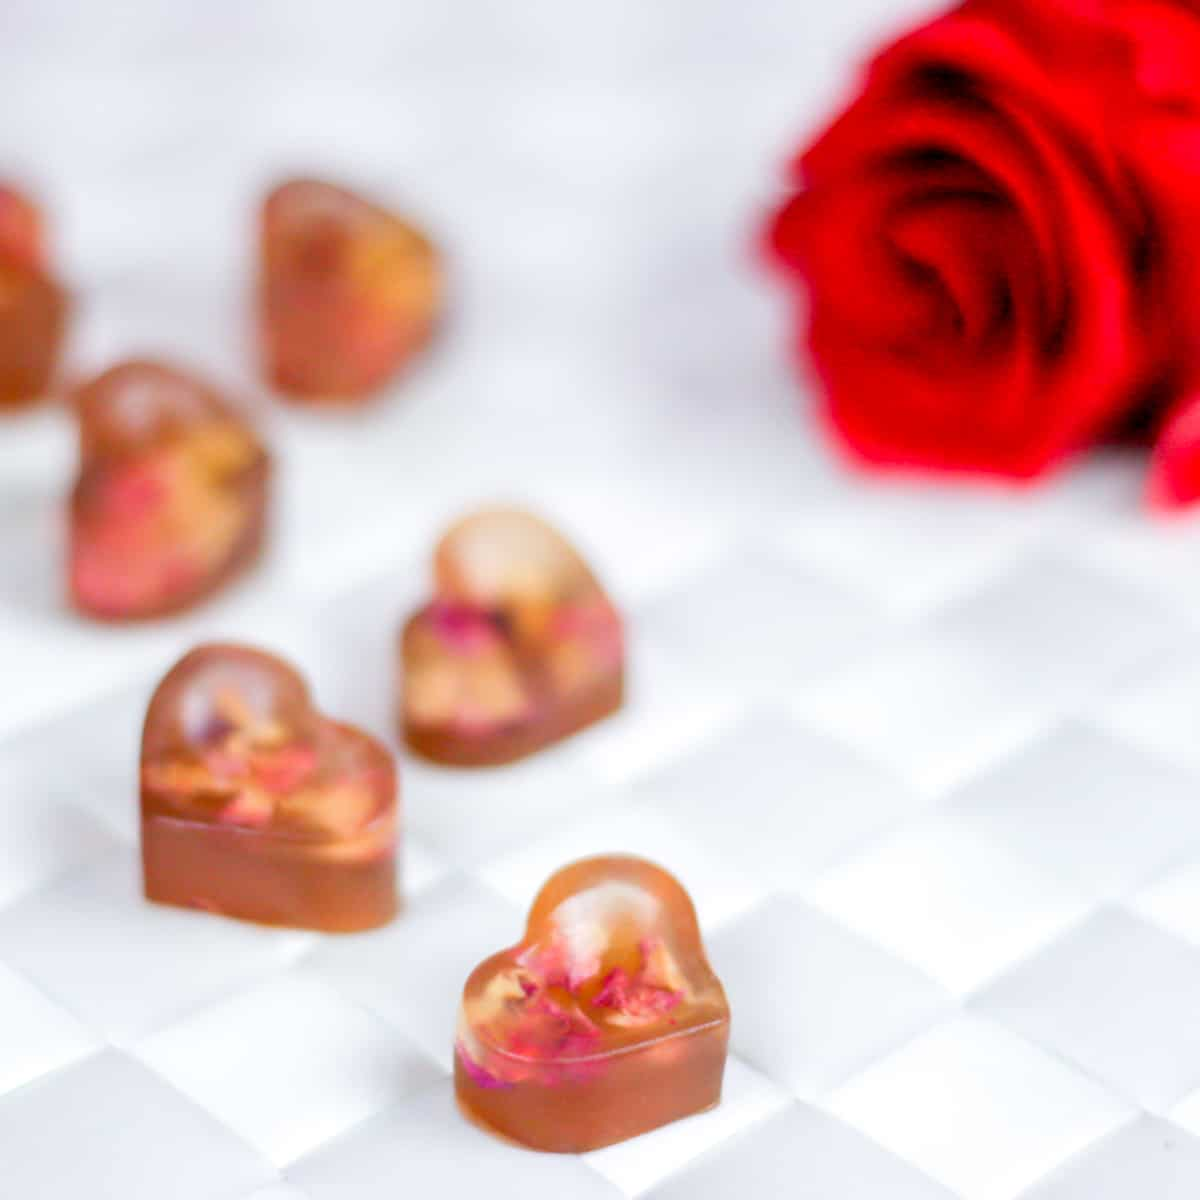 Closeup of heart-shaped gummy treats with real rose petals inside next to a red rose.